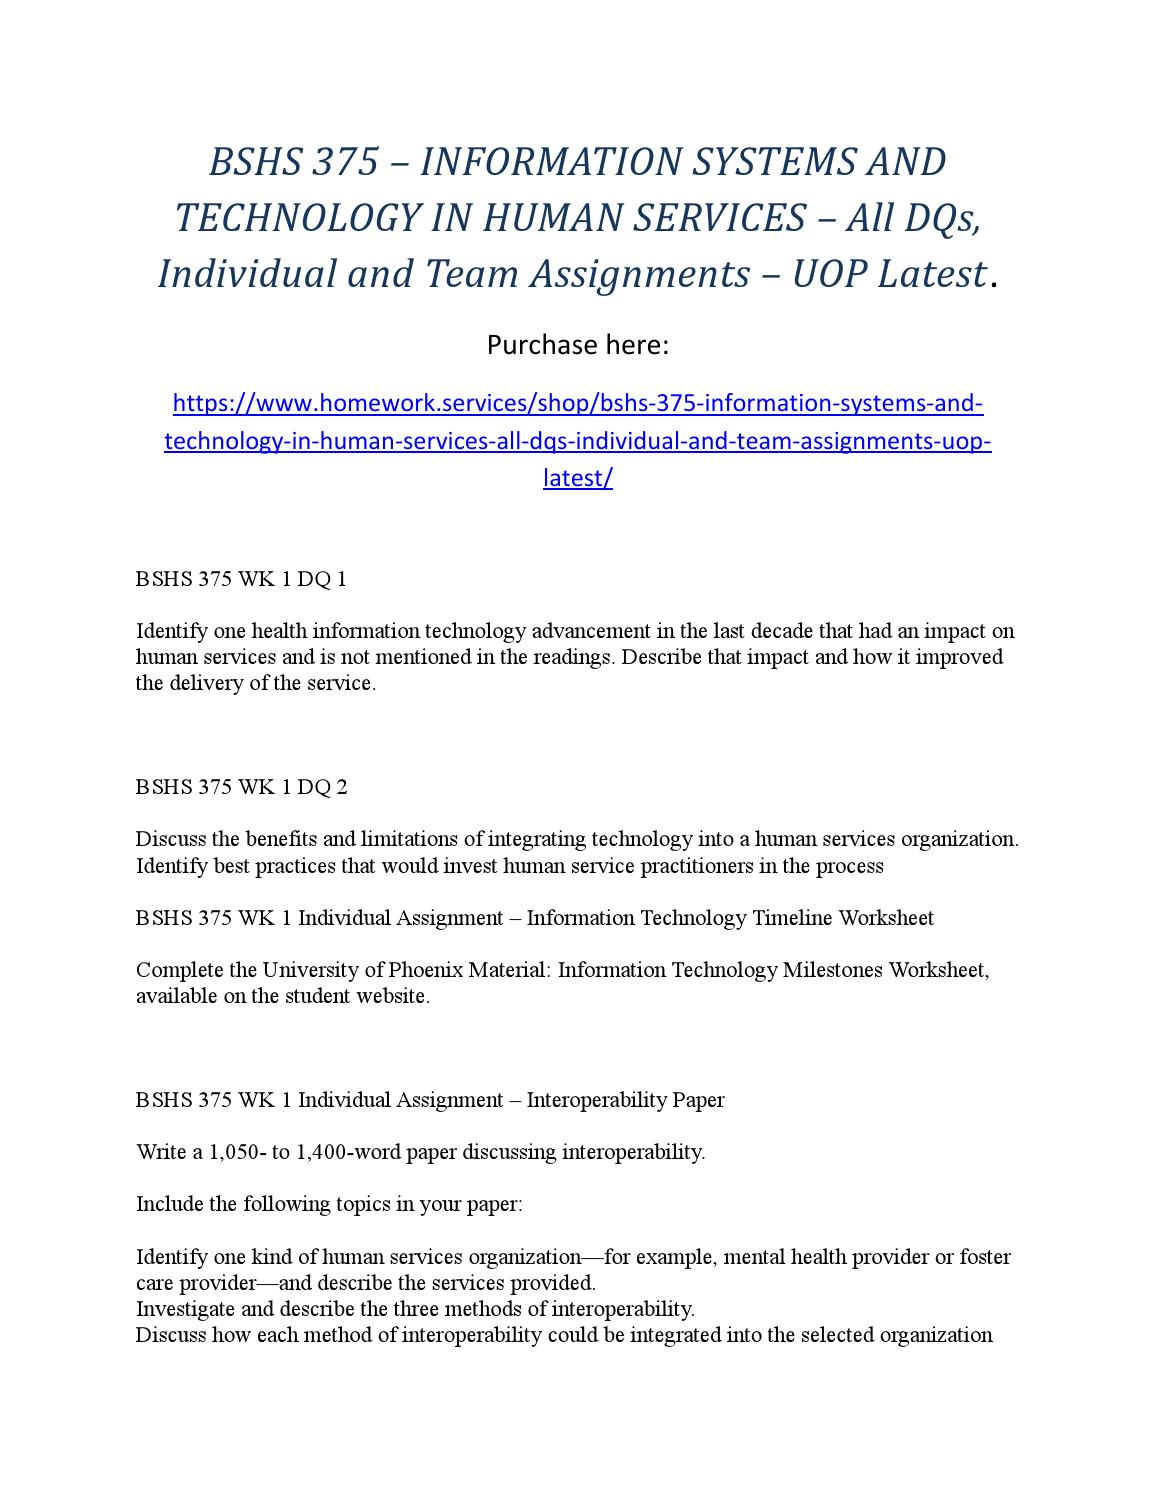 BSHS 375 – INFORMATION SYSTEMS AND TECHNOLOGY IN HUMAN